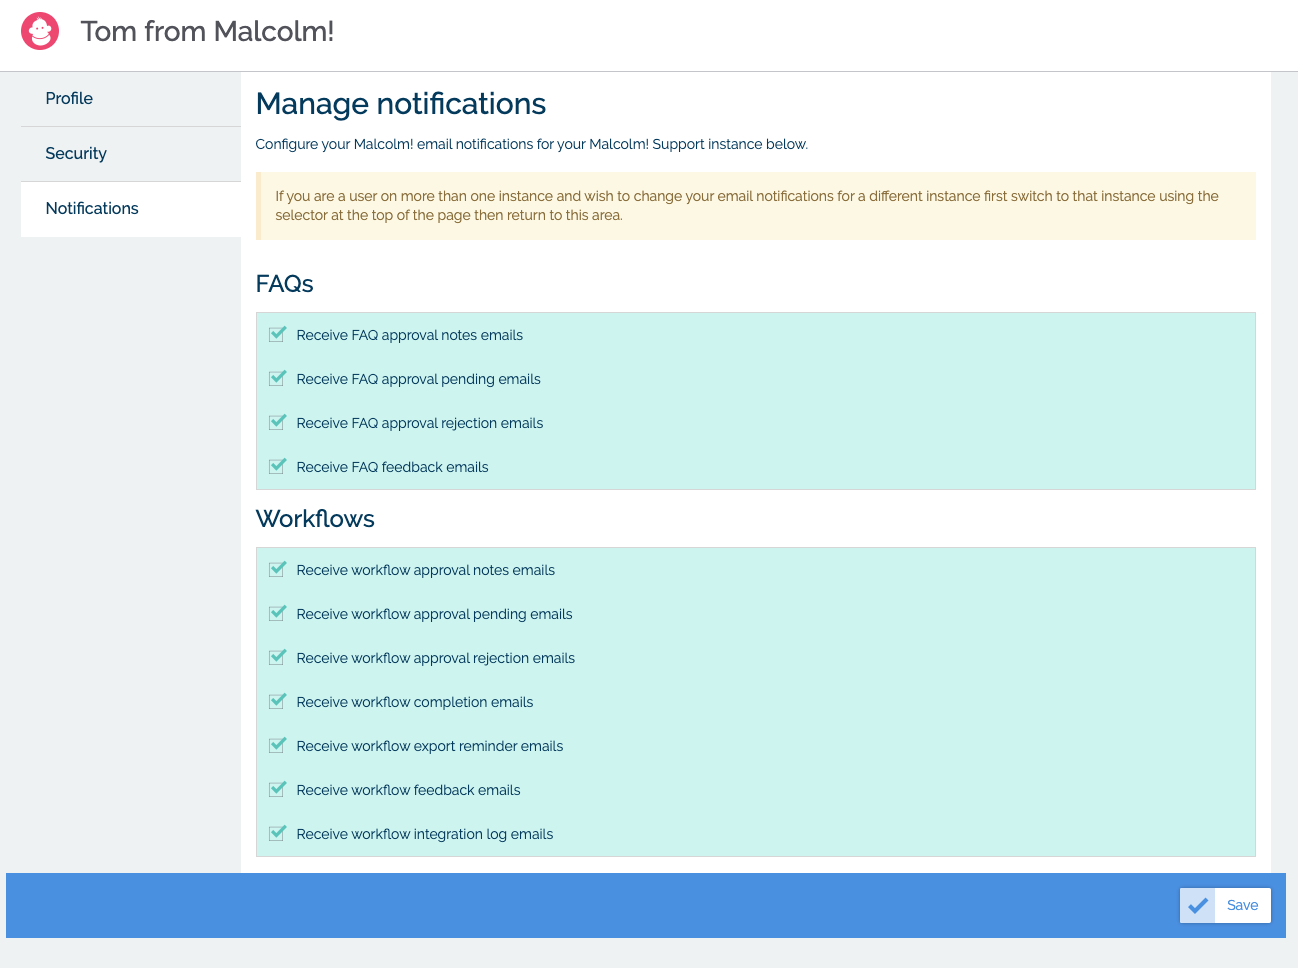 Manage your notifications in MyMalcolm